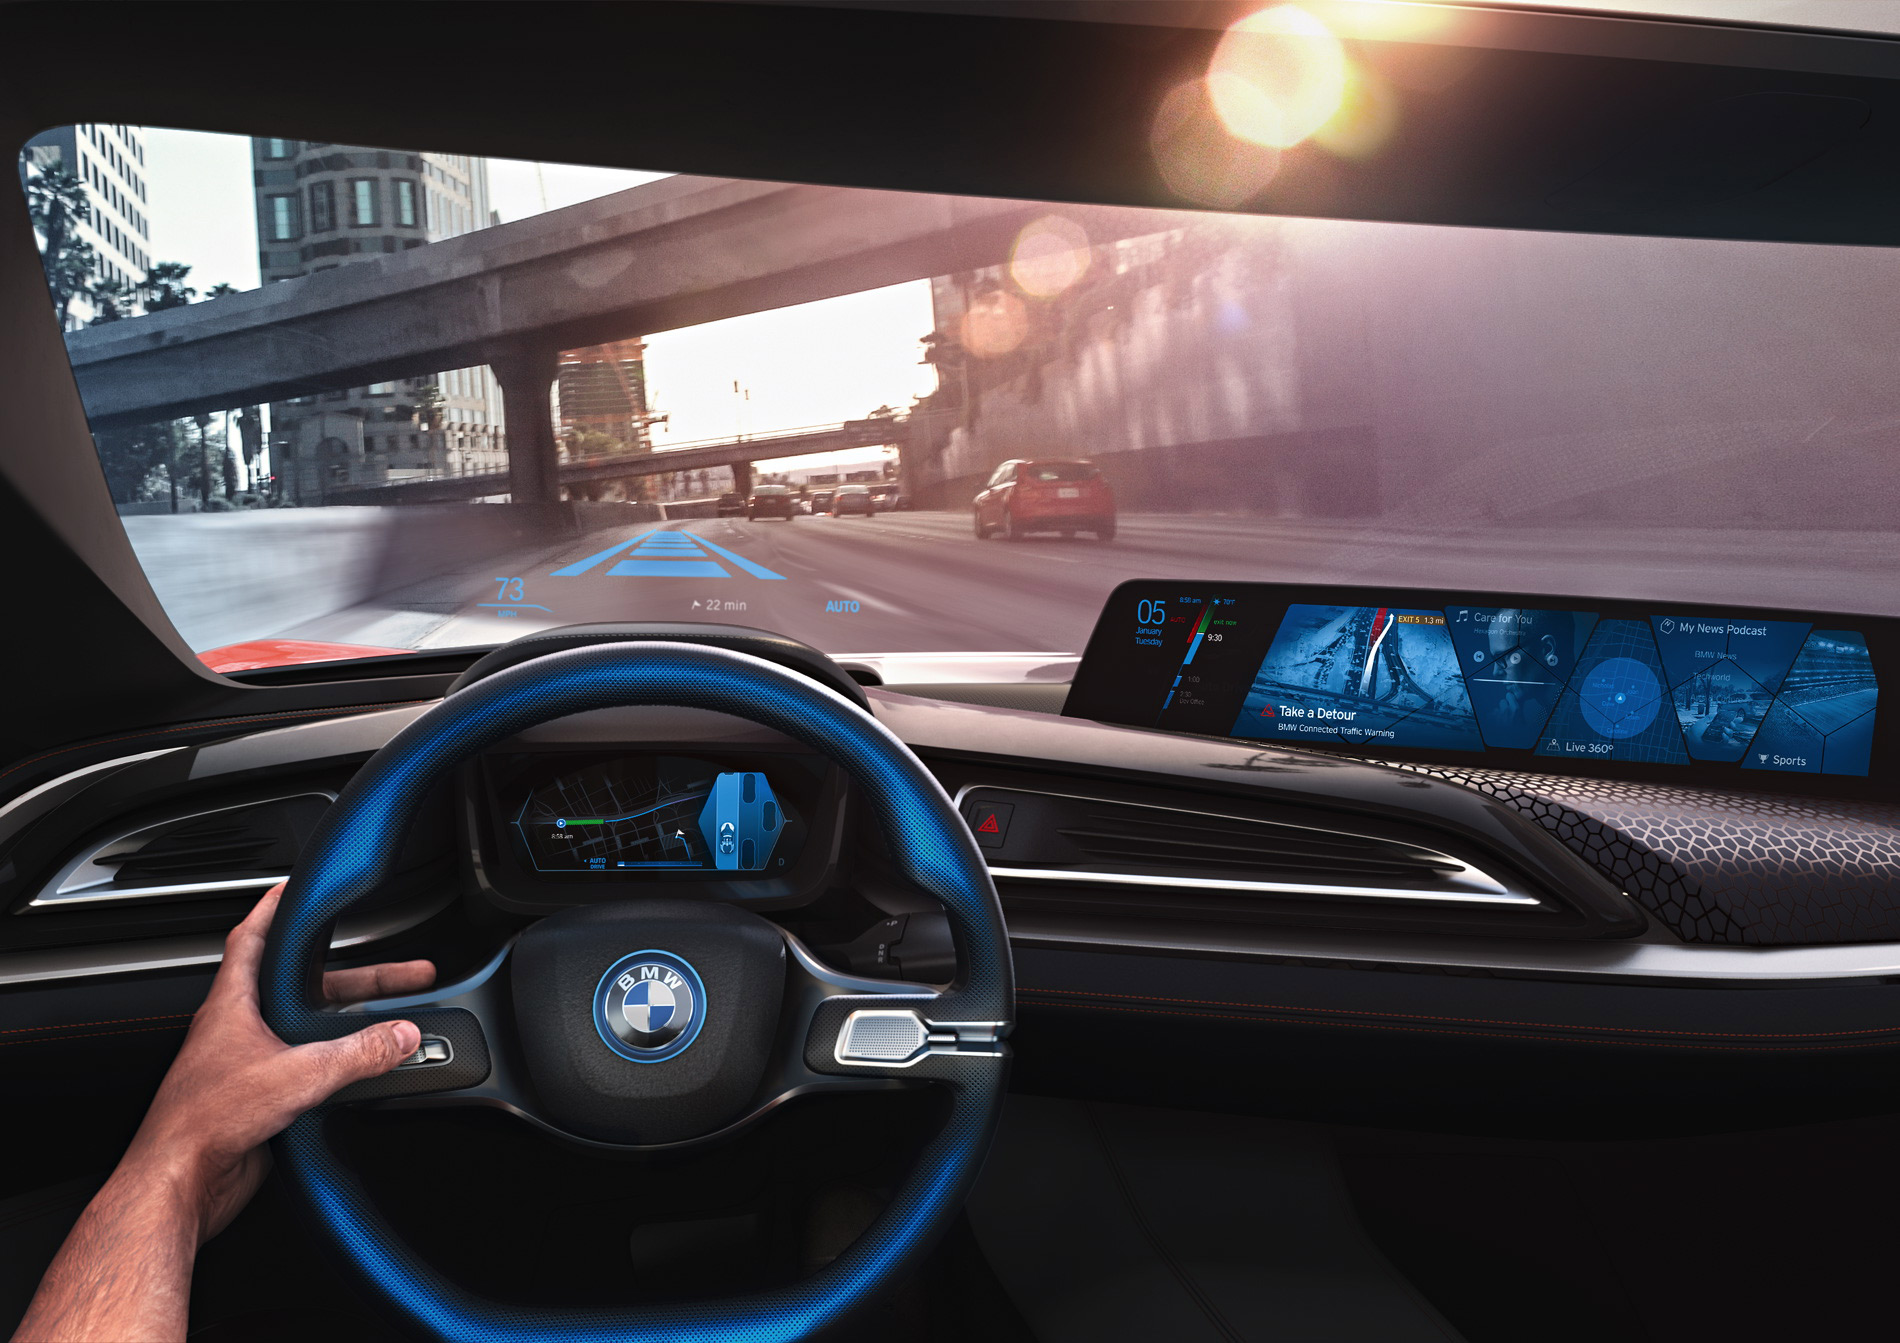 BMW self-driving car interior